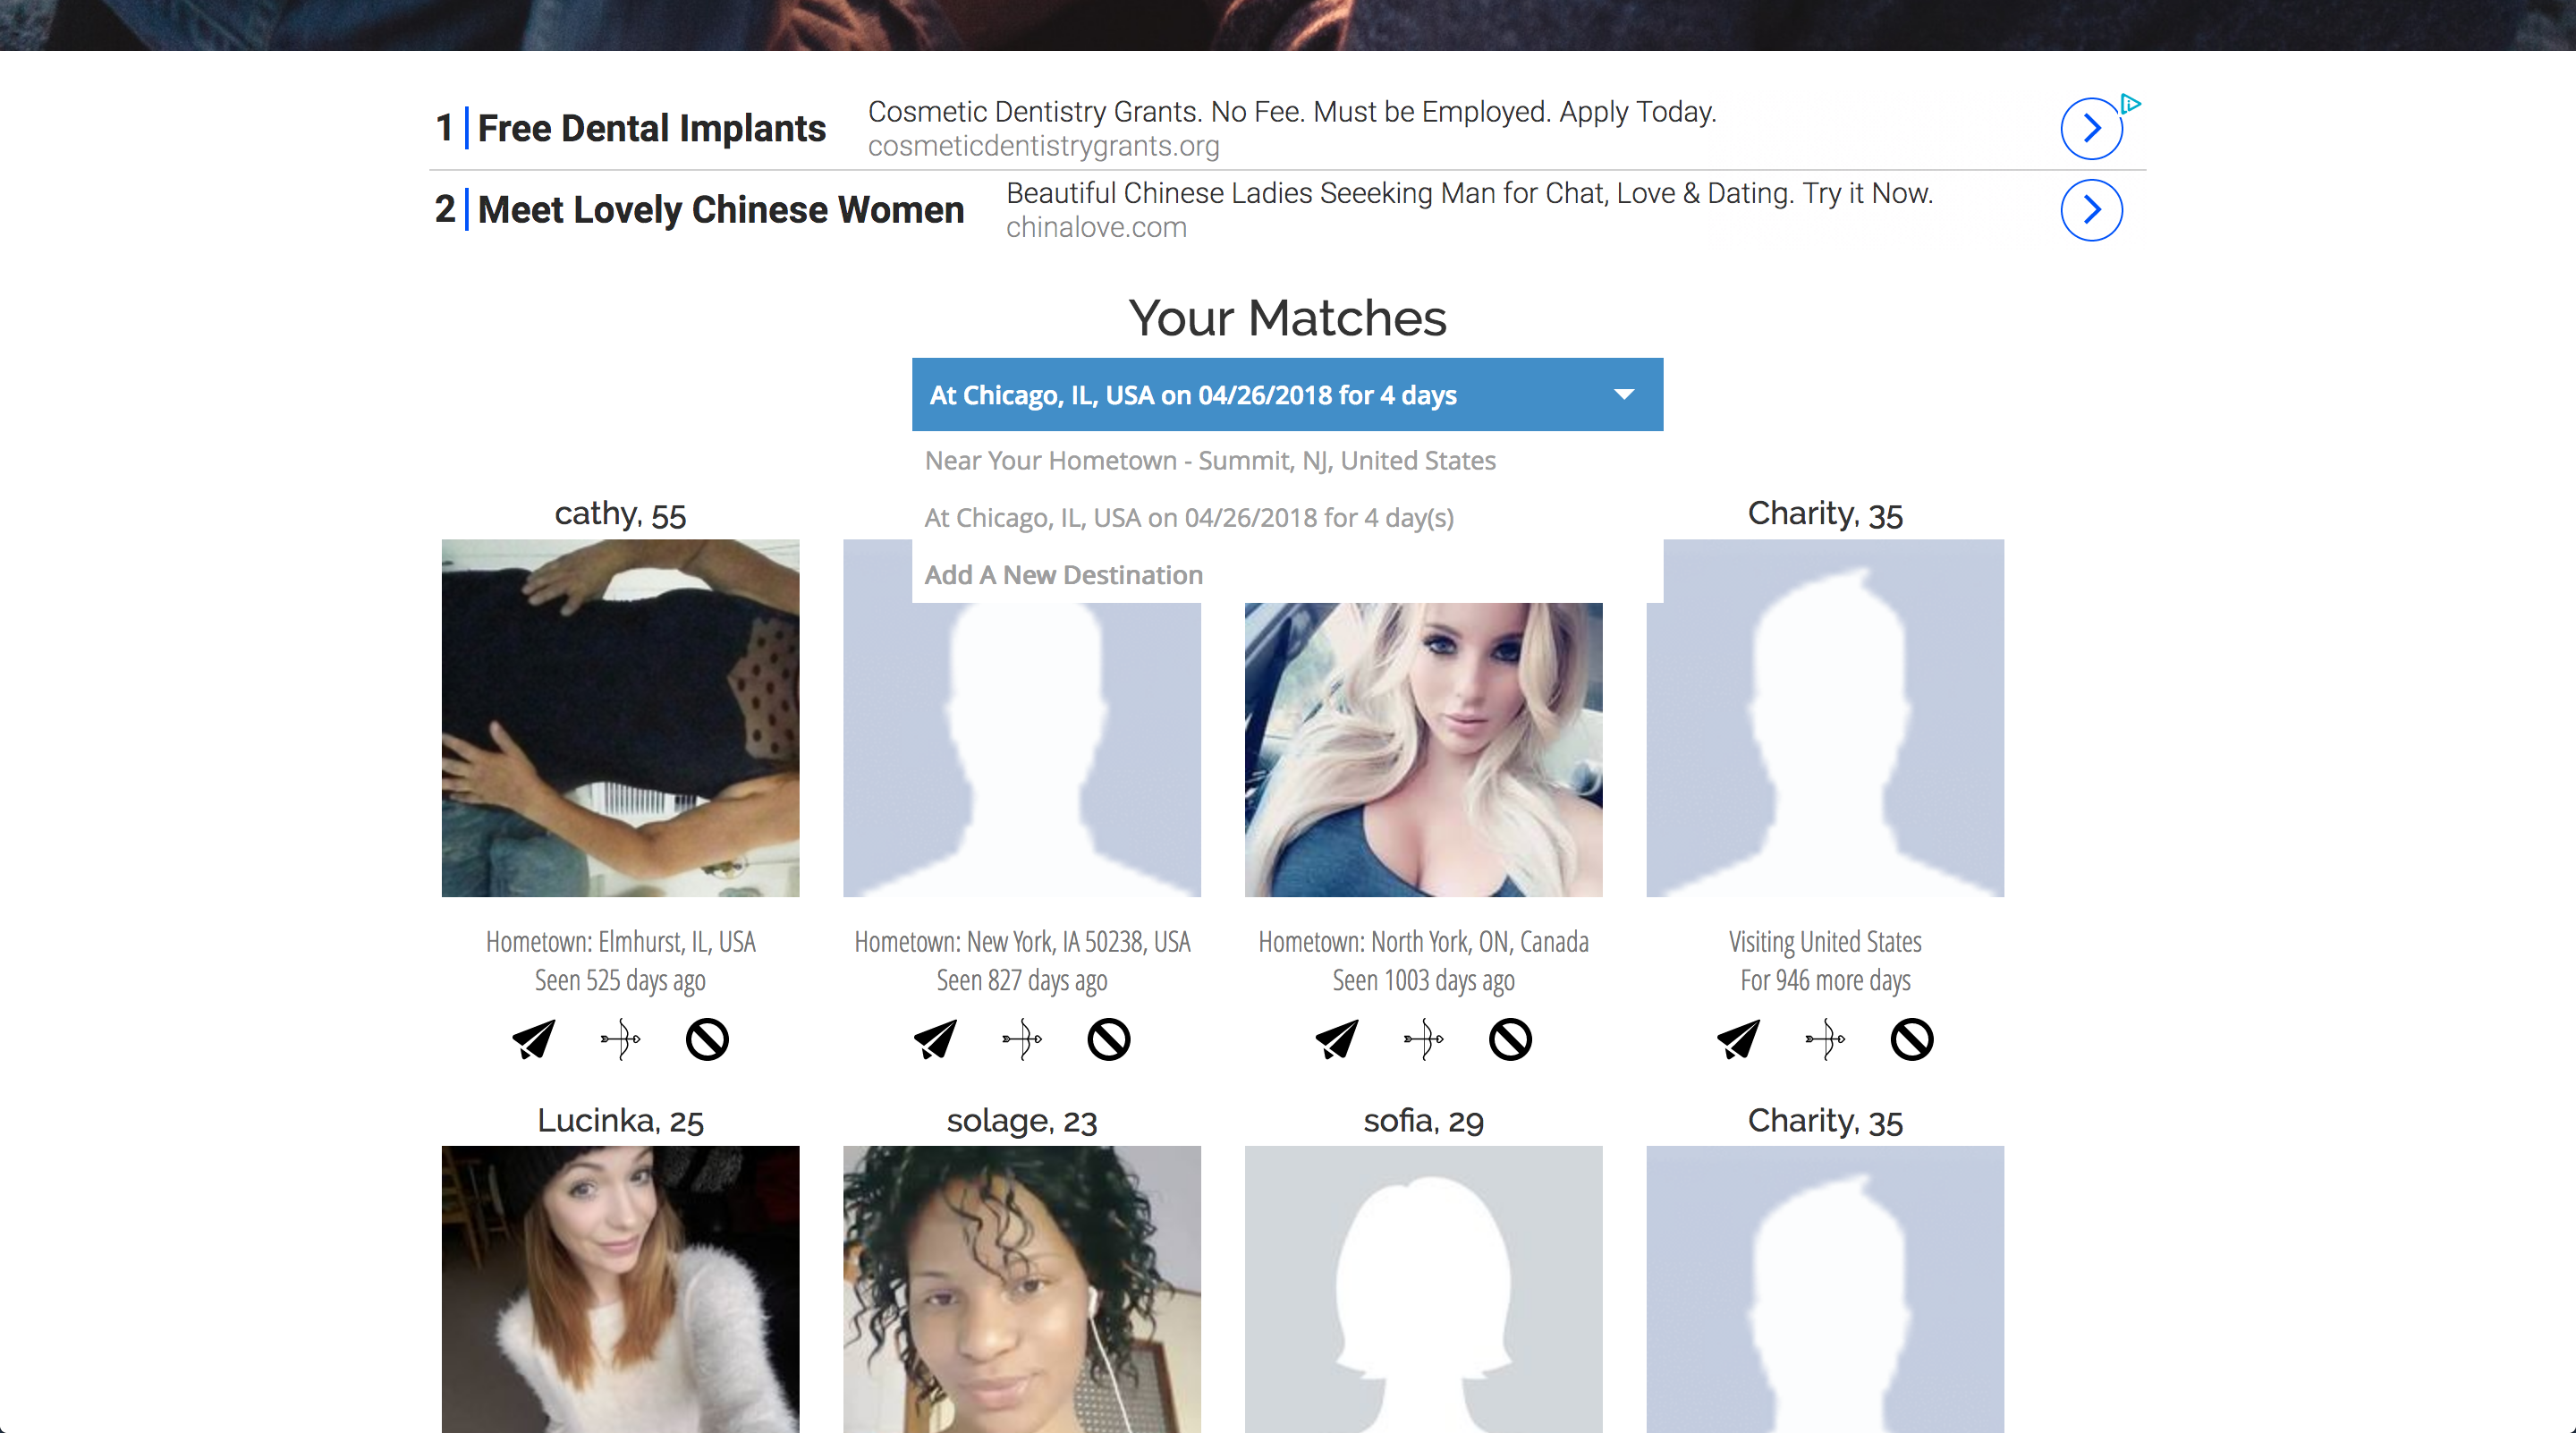 Find matches near you